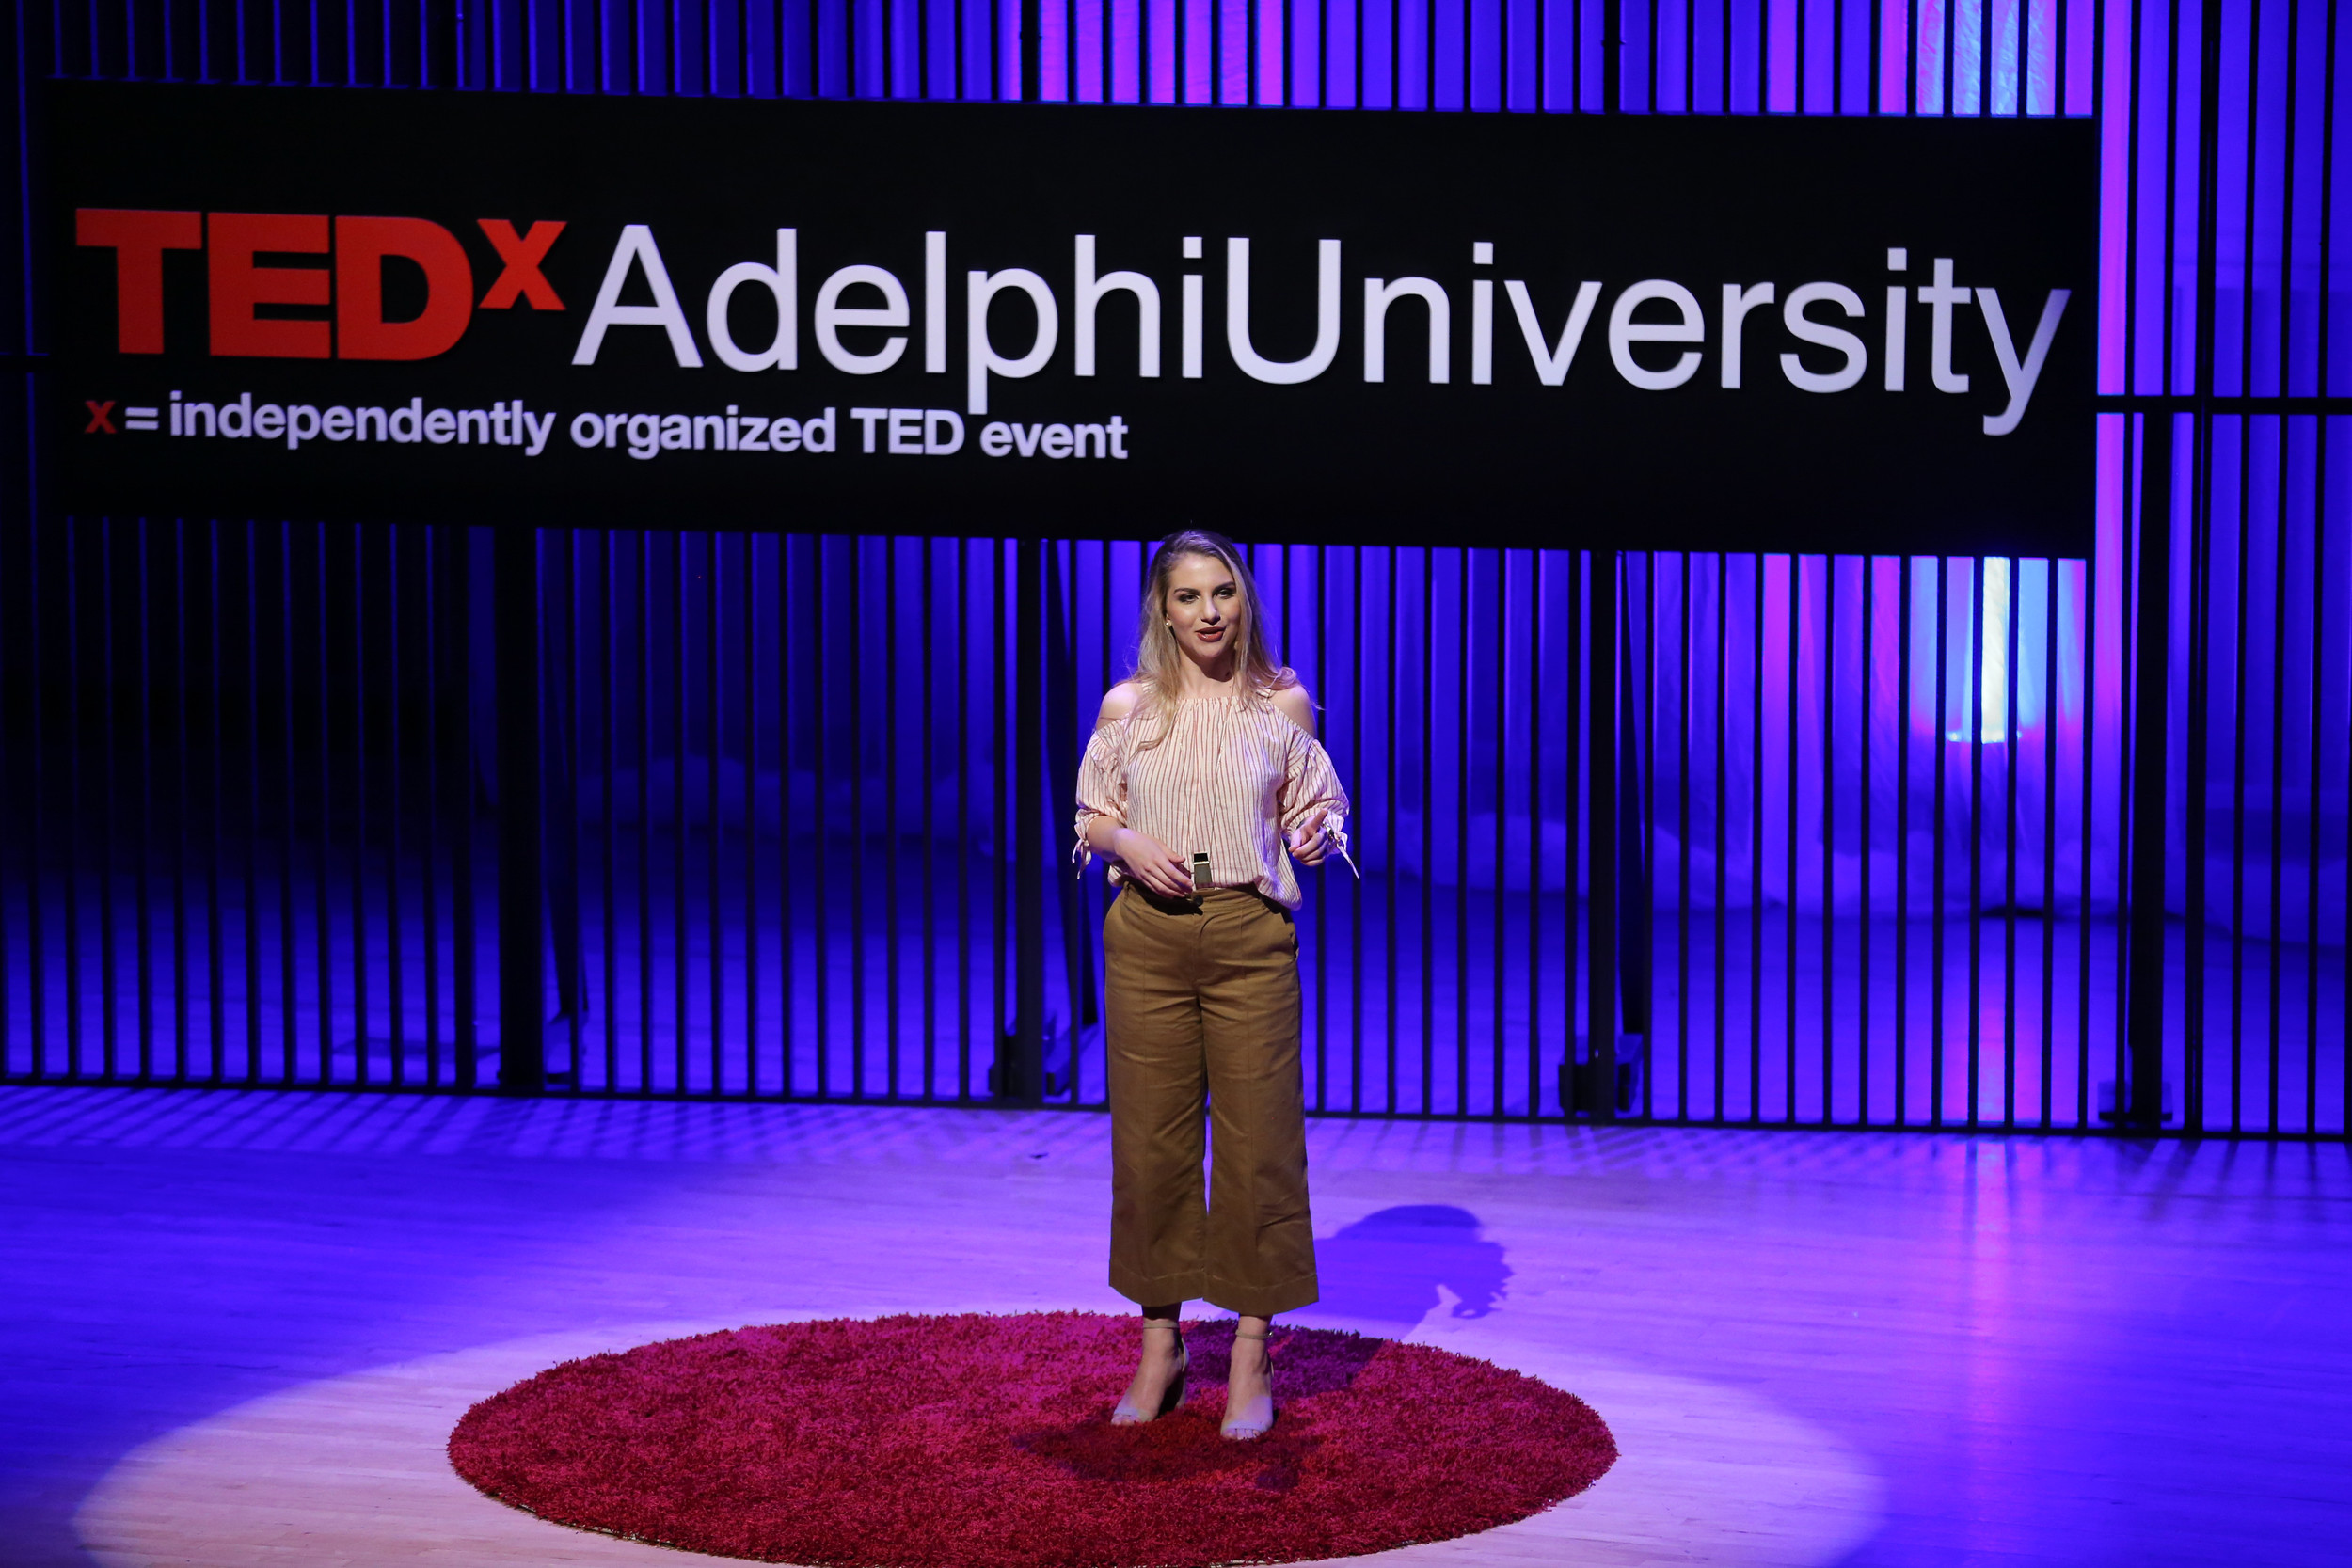 Kaitlinn Estevez, 24, of Valley Stream, delivered a powerful talk at the second annual TEDxAdelphiUniversity on March 31 about her struggle with mental illness.